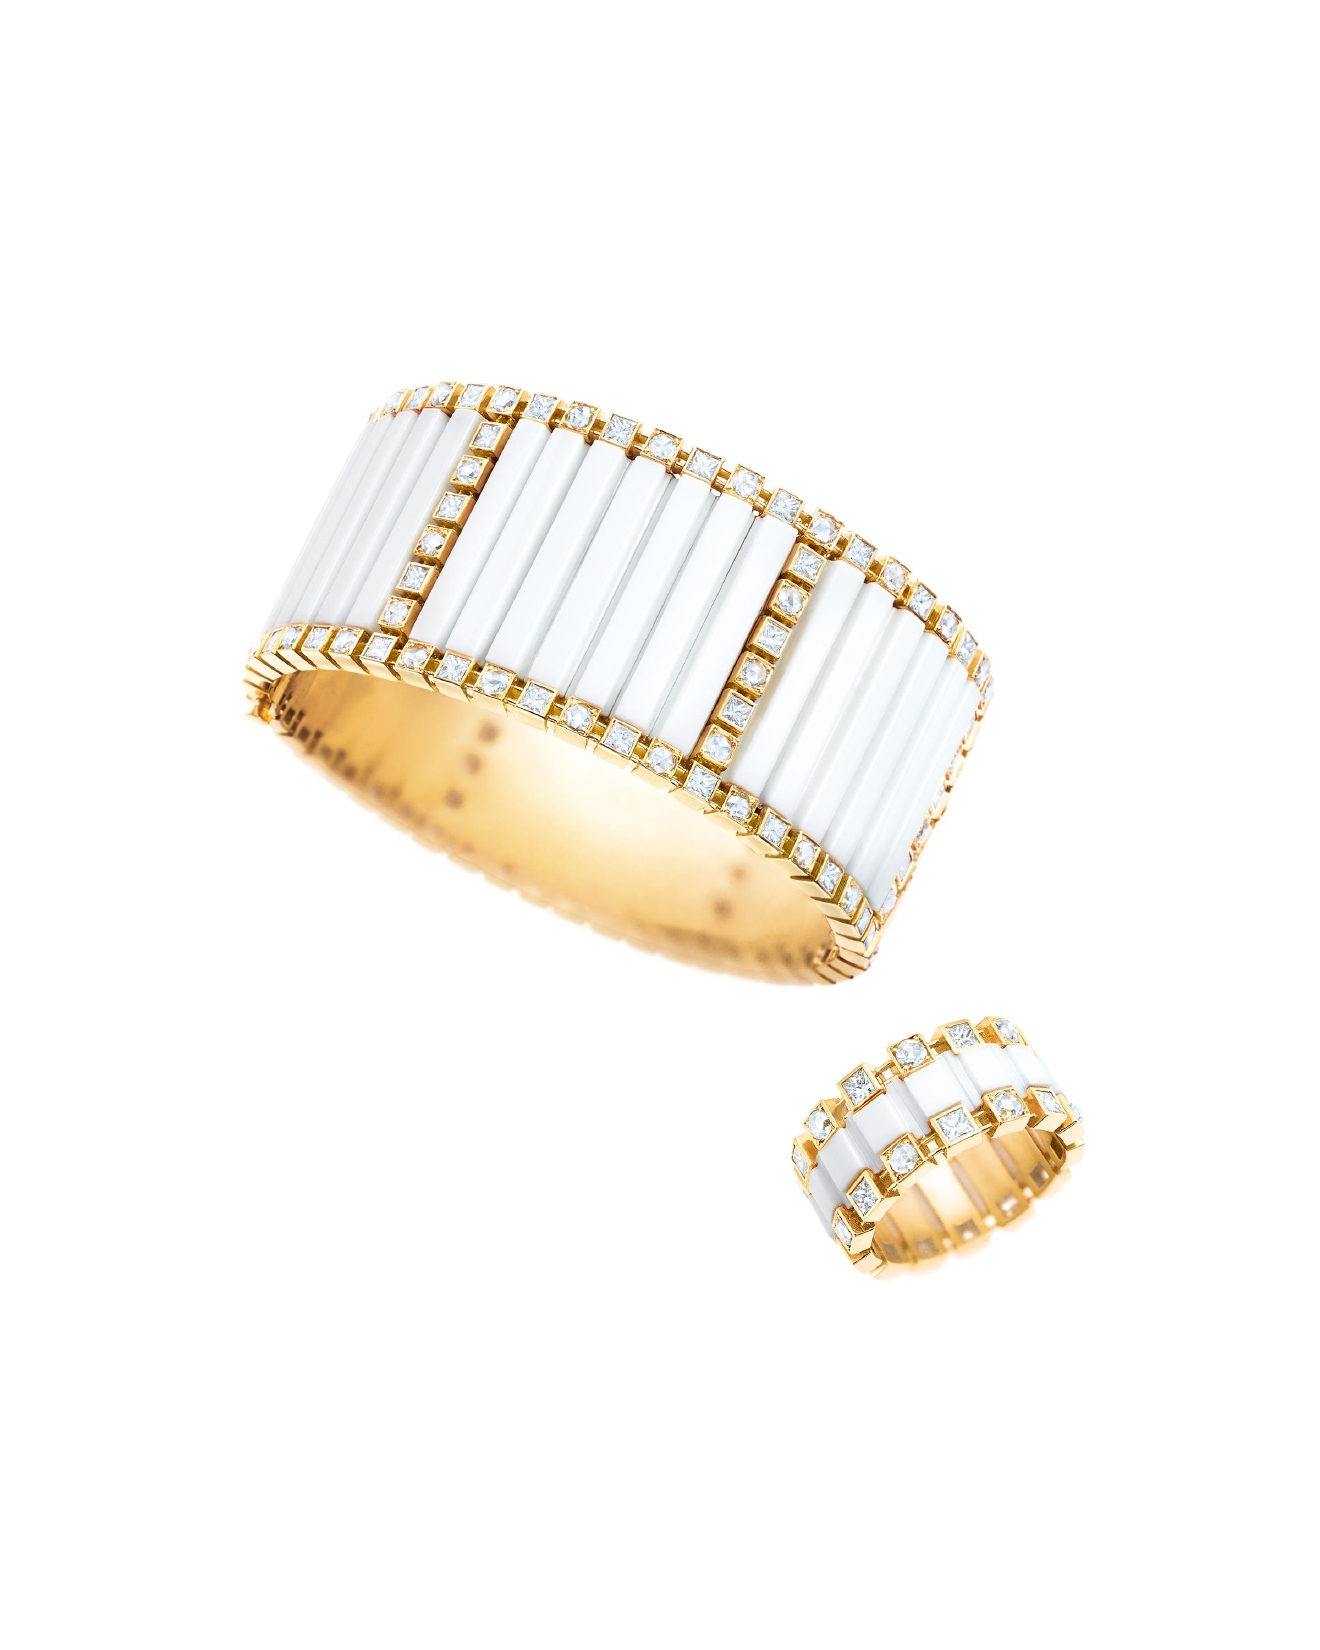 Tiffany white agate bracelet ($85,000) and square ring with diamonds in 18k yellow gold, $20,000,  Tiffany & Co., 8045 Leesburg Pike, Vienna, VA (Image: Courtesy Tiffany & Co.)